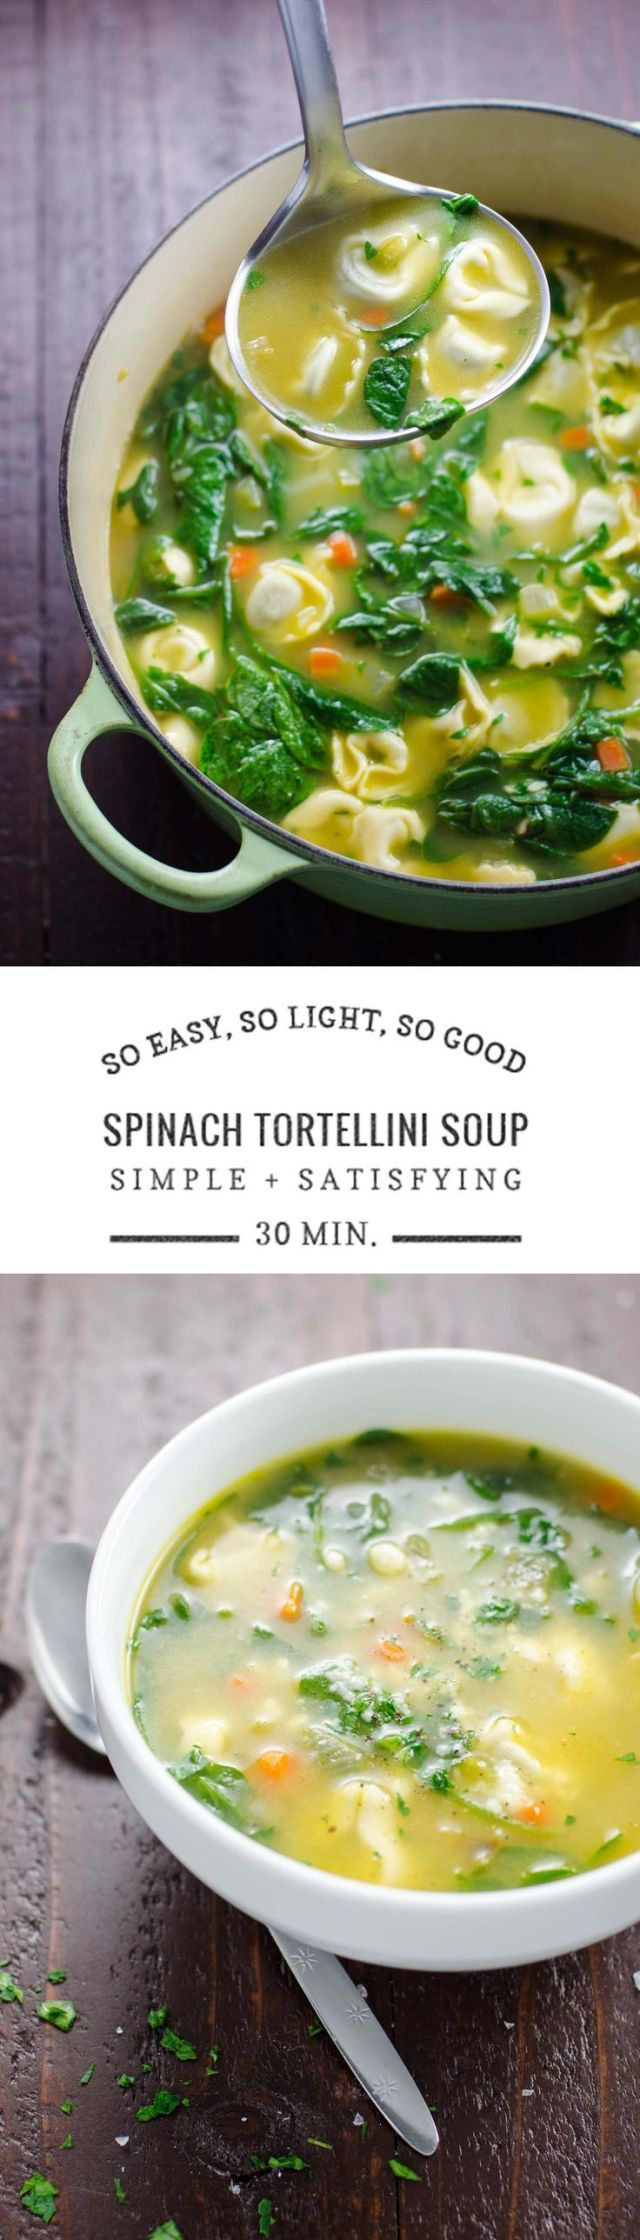 Simple and satisfying this spinach tortellini soup recipe is ready in half an h